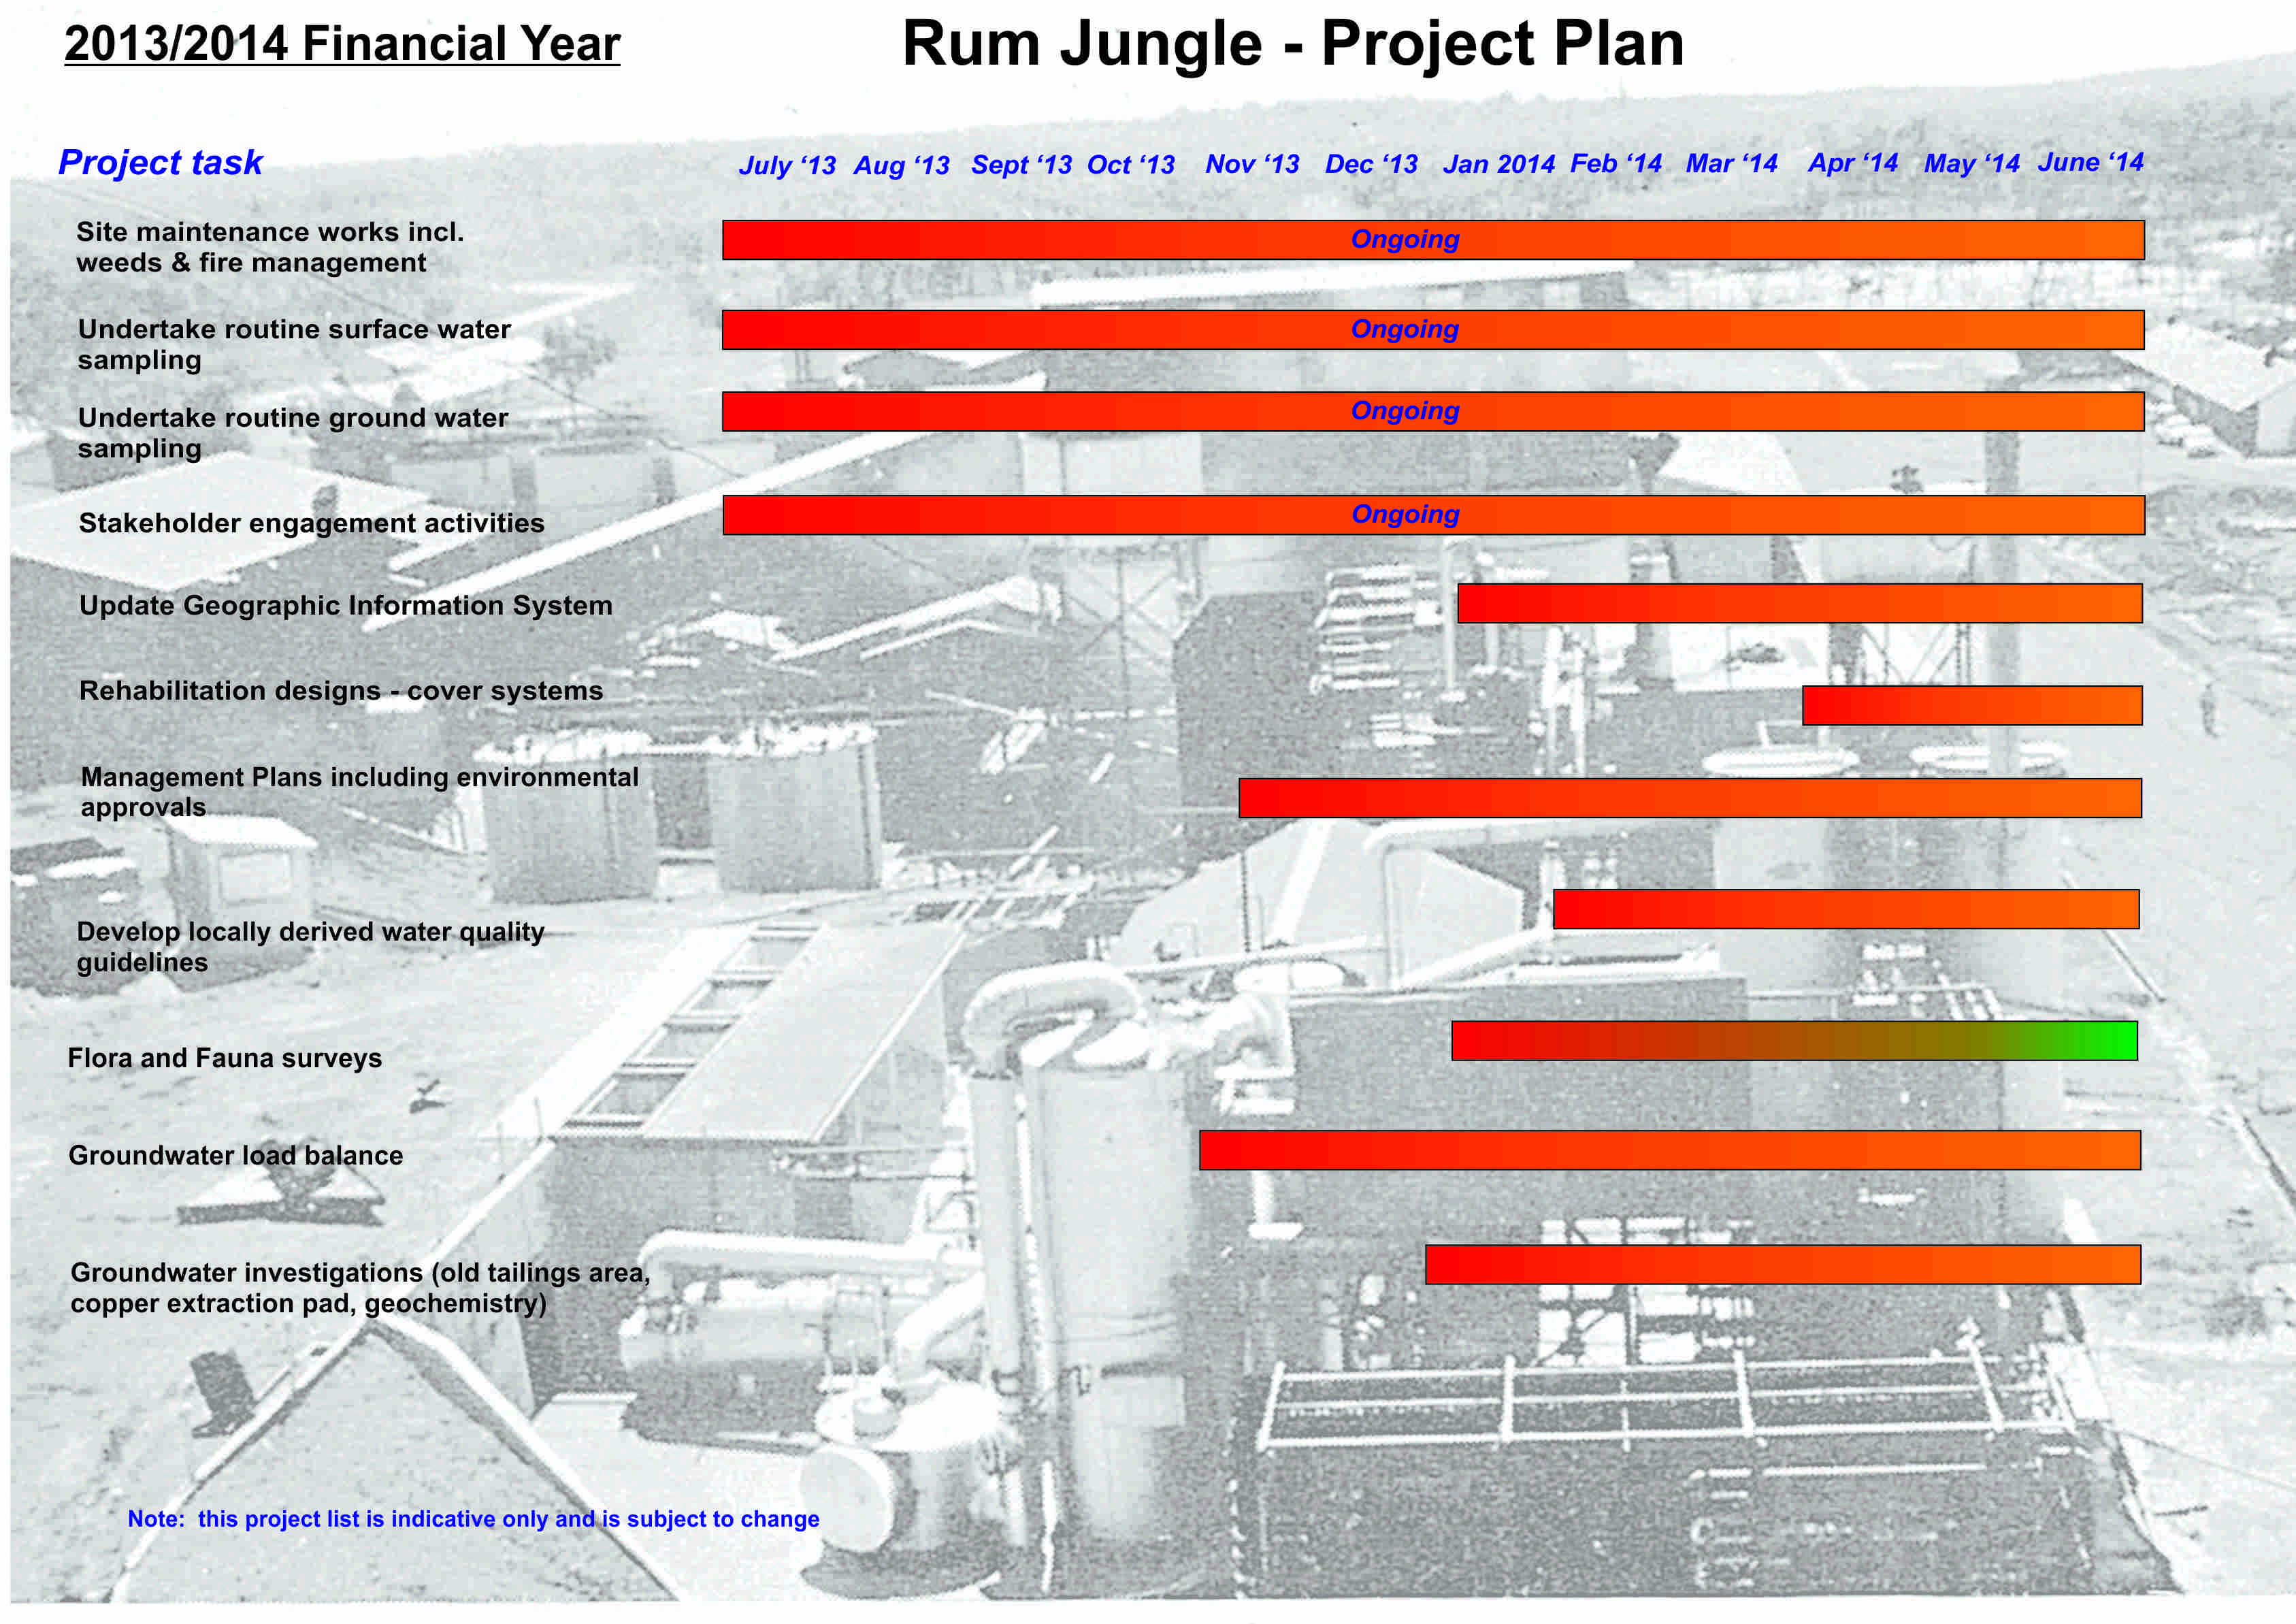 project plan 13-14